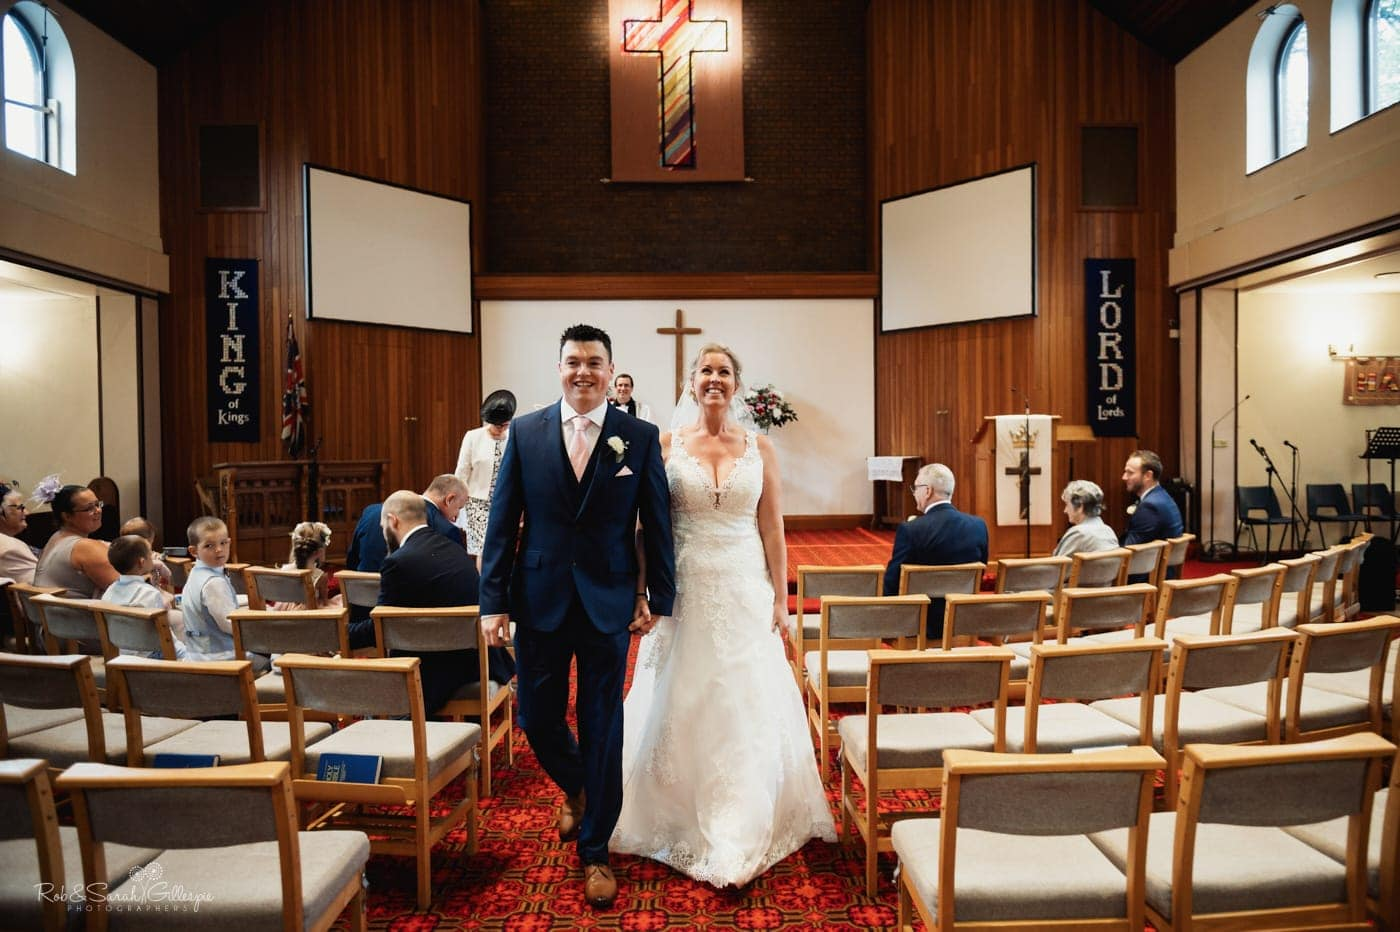 Bride and groom wak down aisle after small church wedding